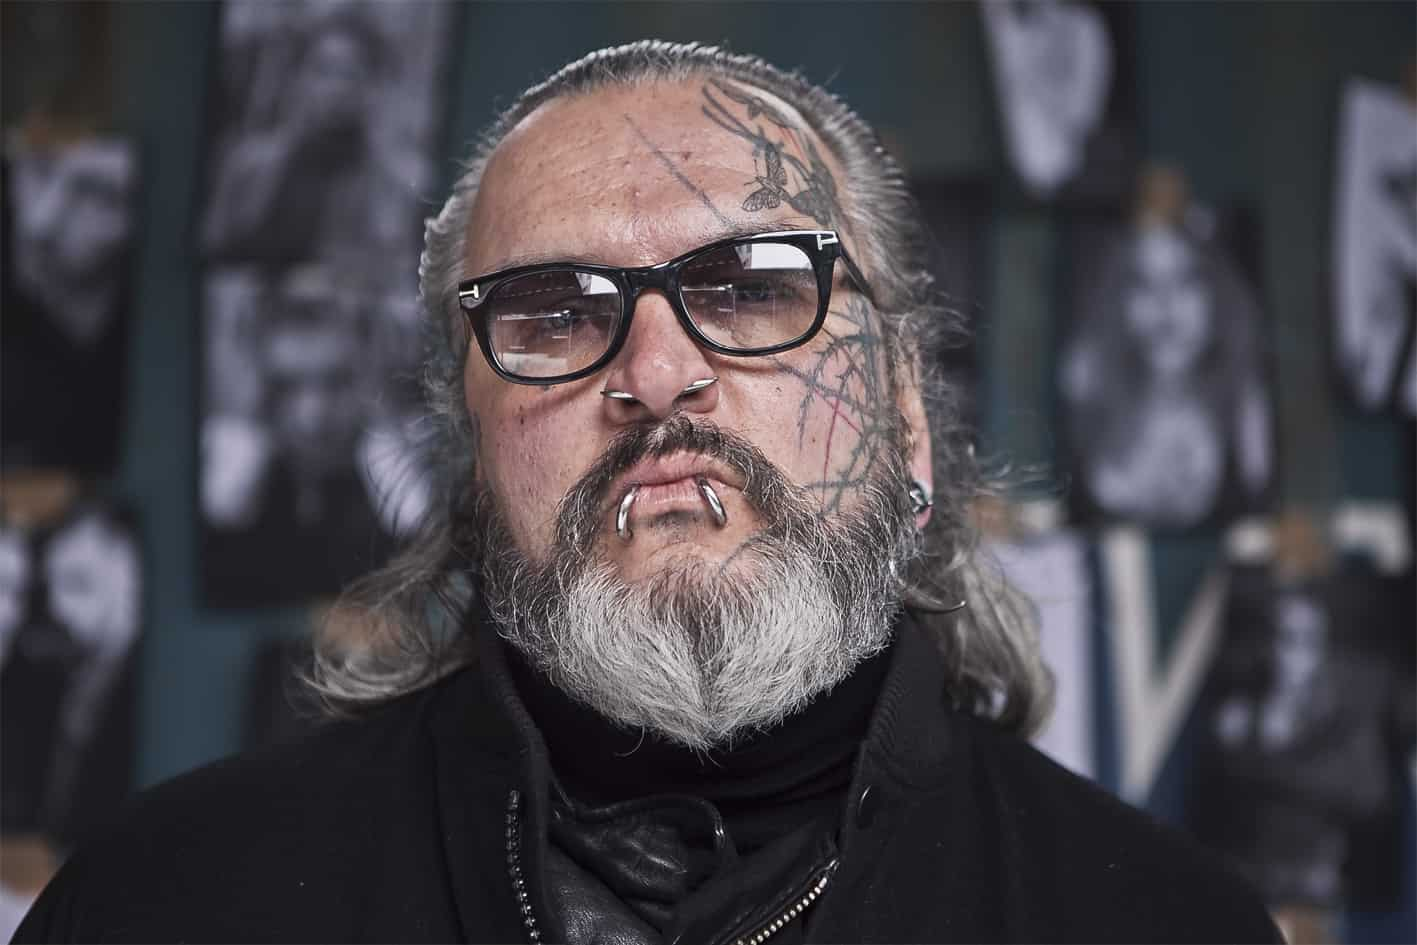 Berghain Bouncer Sven Marquardt Photographs for Hugo Boss